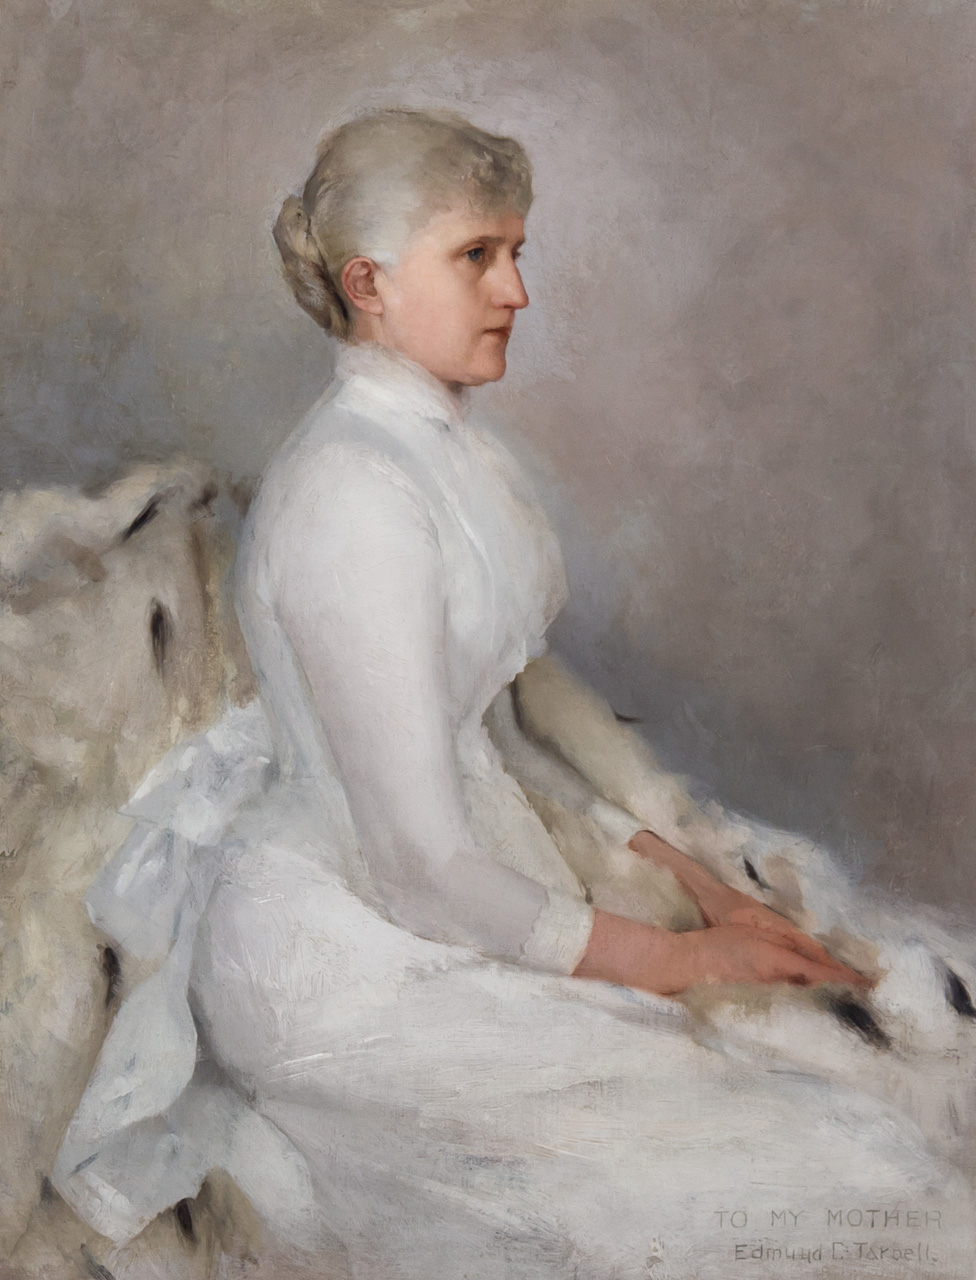 """To My Mother"" Portrait of Maria Sophia (Fernald) Tarbell"